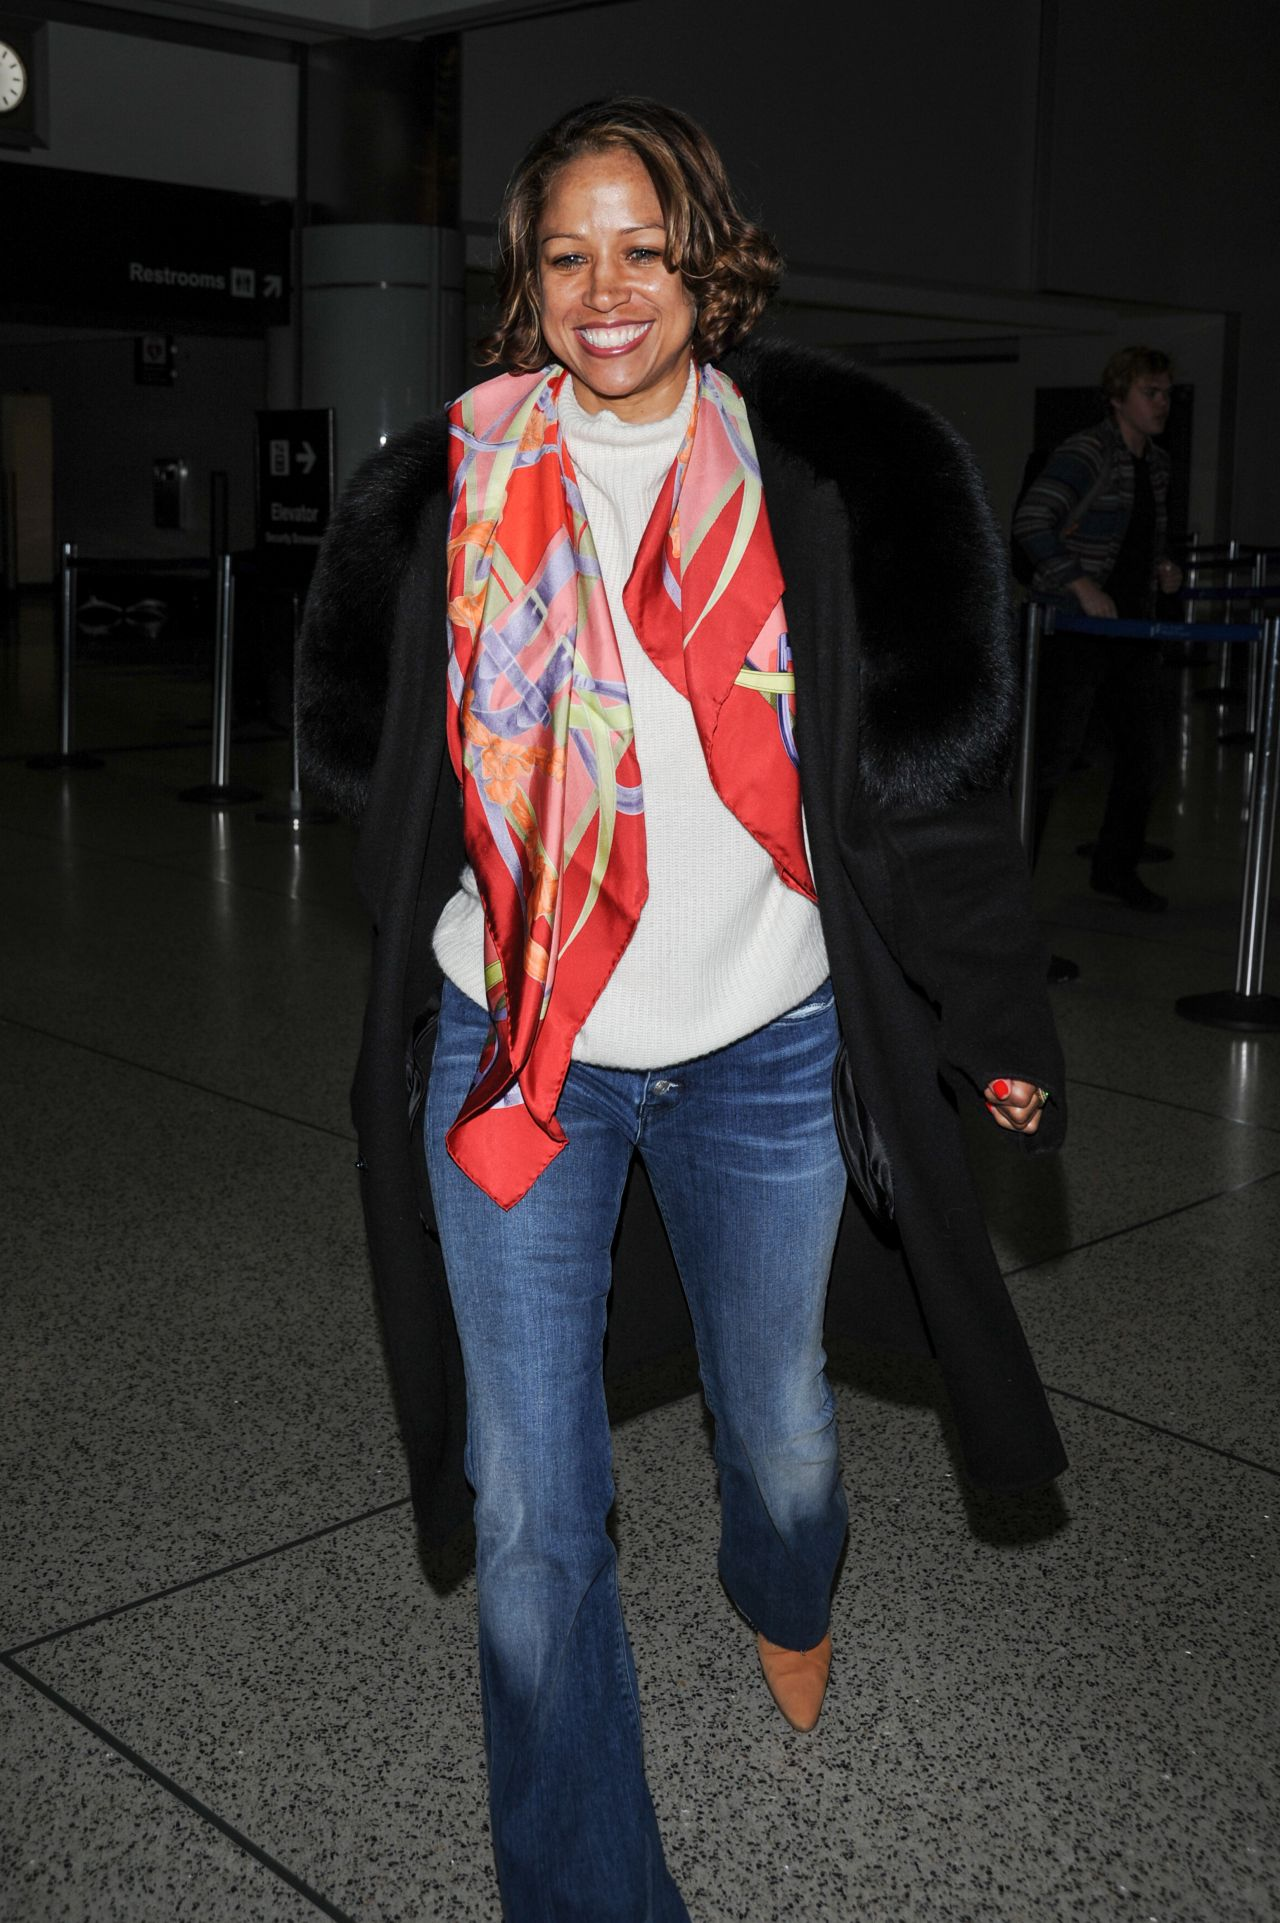 Stacey Dash at LAX Airport in Los Angeles 3/6/2016